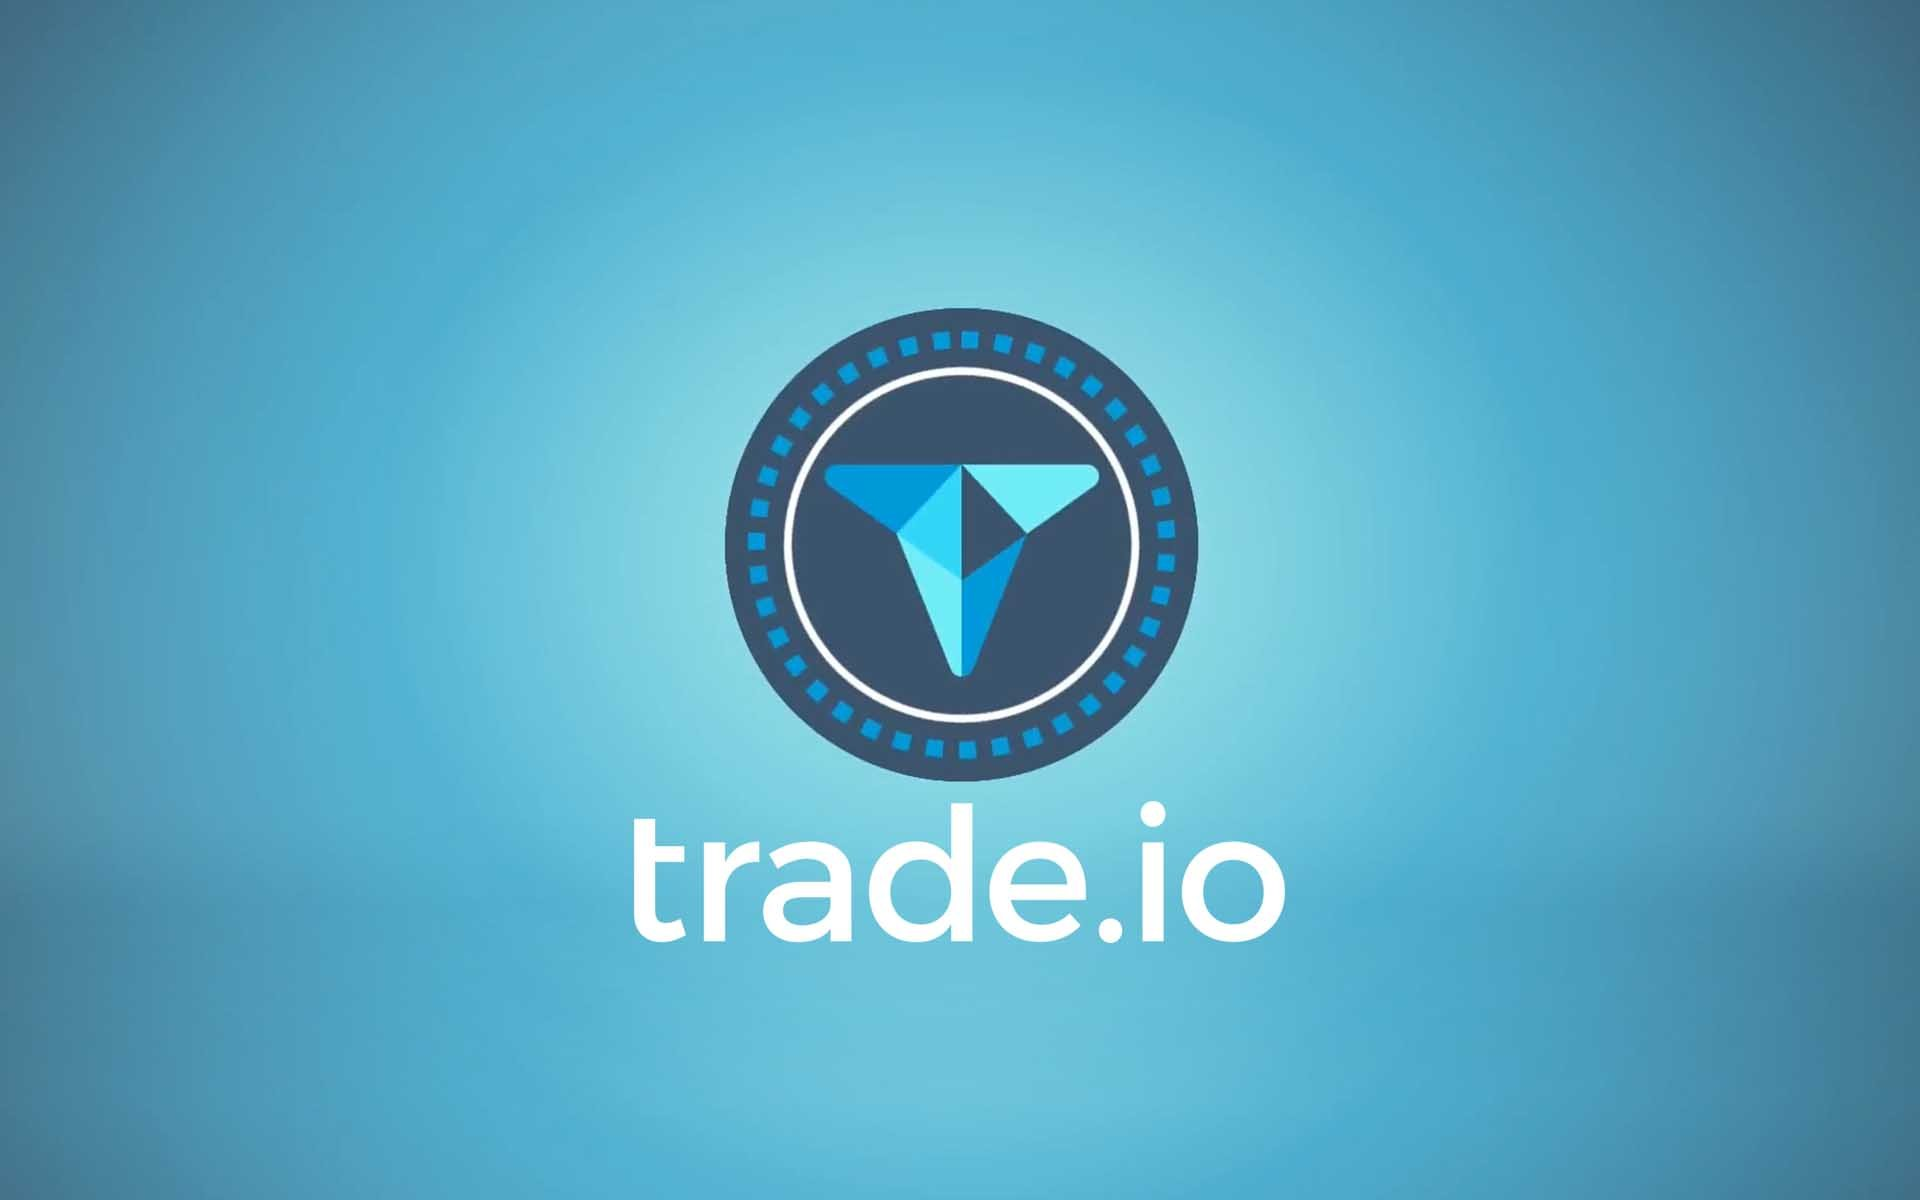 Trade.io Announces Upcoming Tier Change For Its Trade Token, Having Amassed Over $15.5 Million in Funds & 7,000 Participants